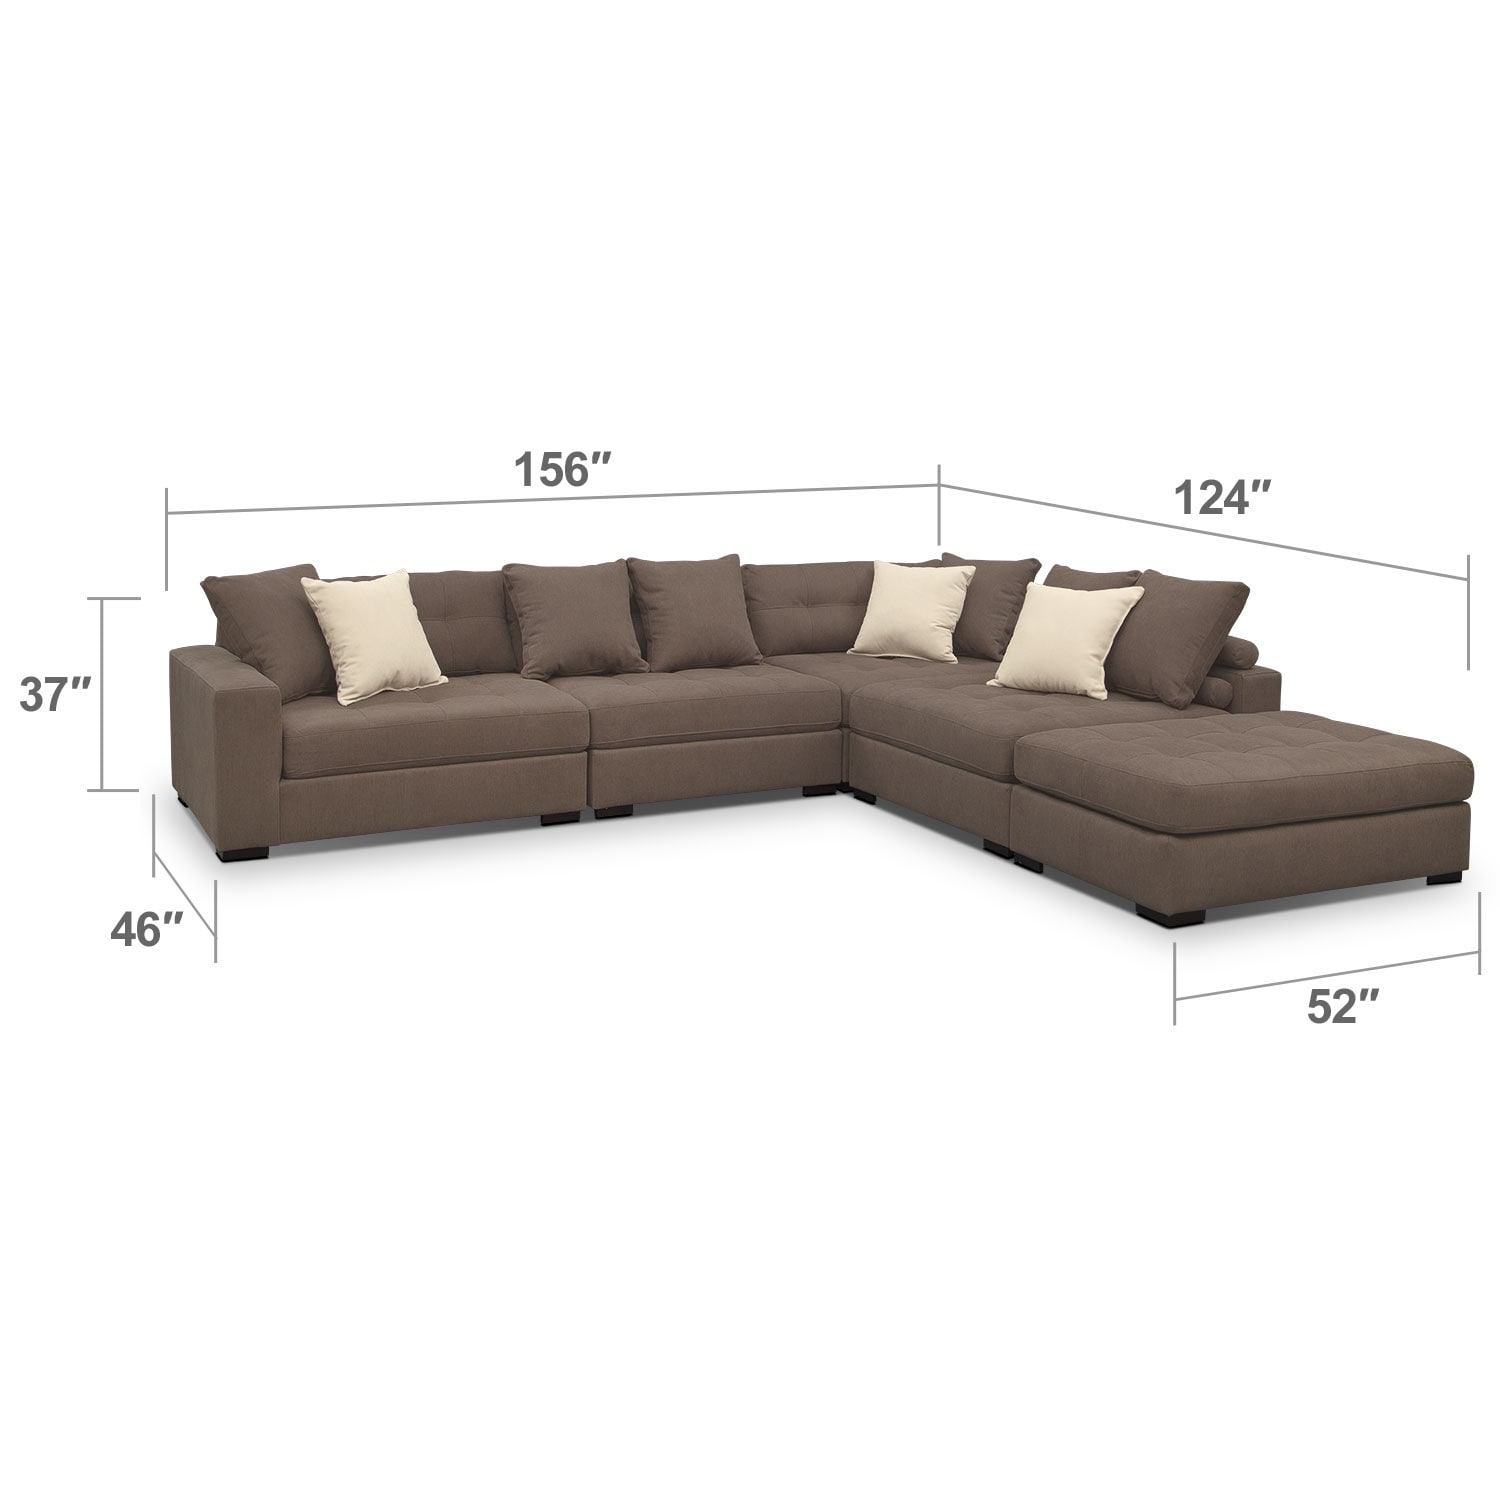 Living Room Furniture - Venti Mocha 5 Pc. Sectional w/ Cocktail Ottoman